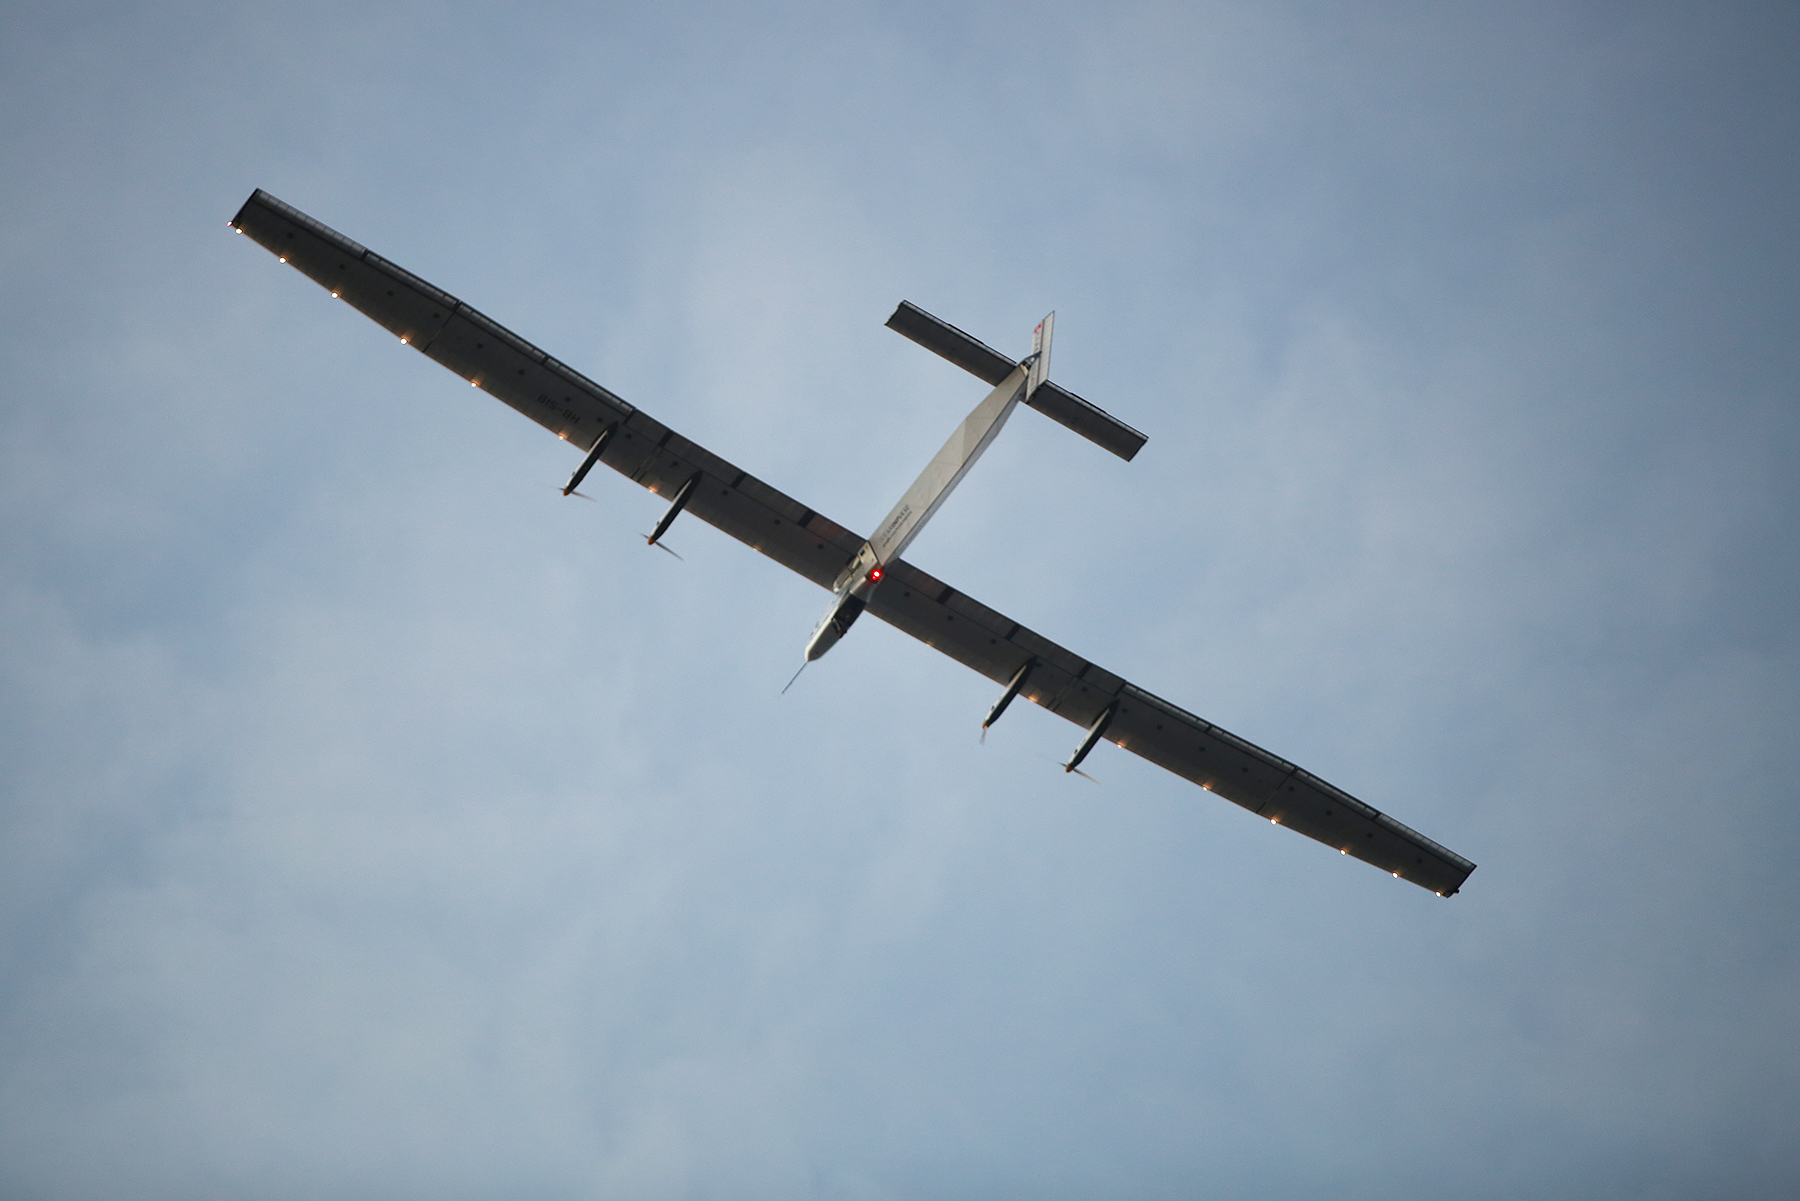 <p>Solar Impulse 2 approaches Kalaeloa Airport in early July after a record five-day flight over the Pacific from Nagoya, Japan. It's one leg of an around-the-world flight for the solar-powered aircraft.</p>